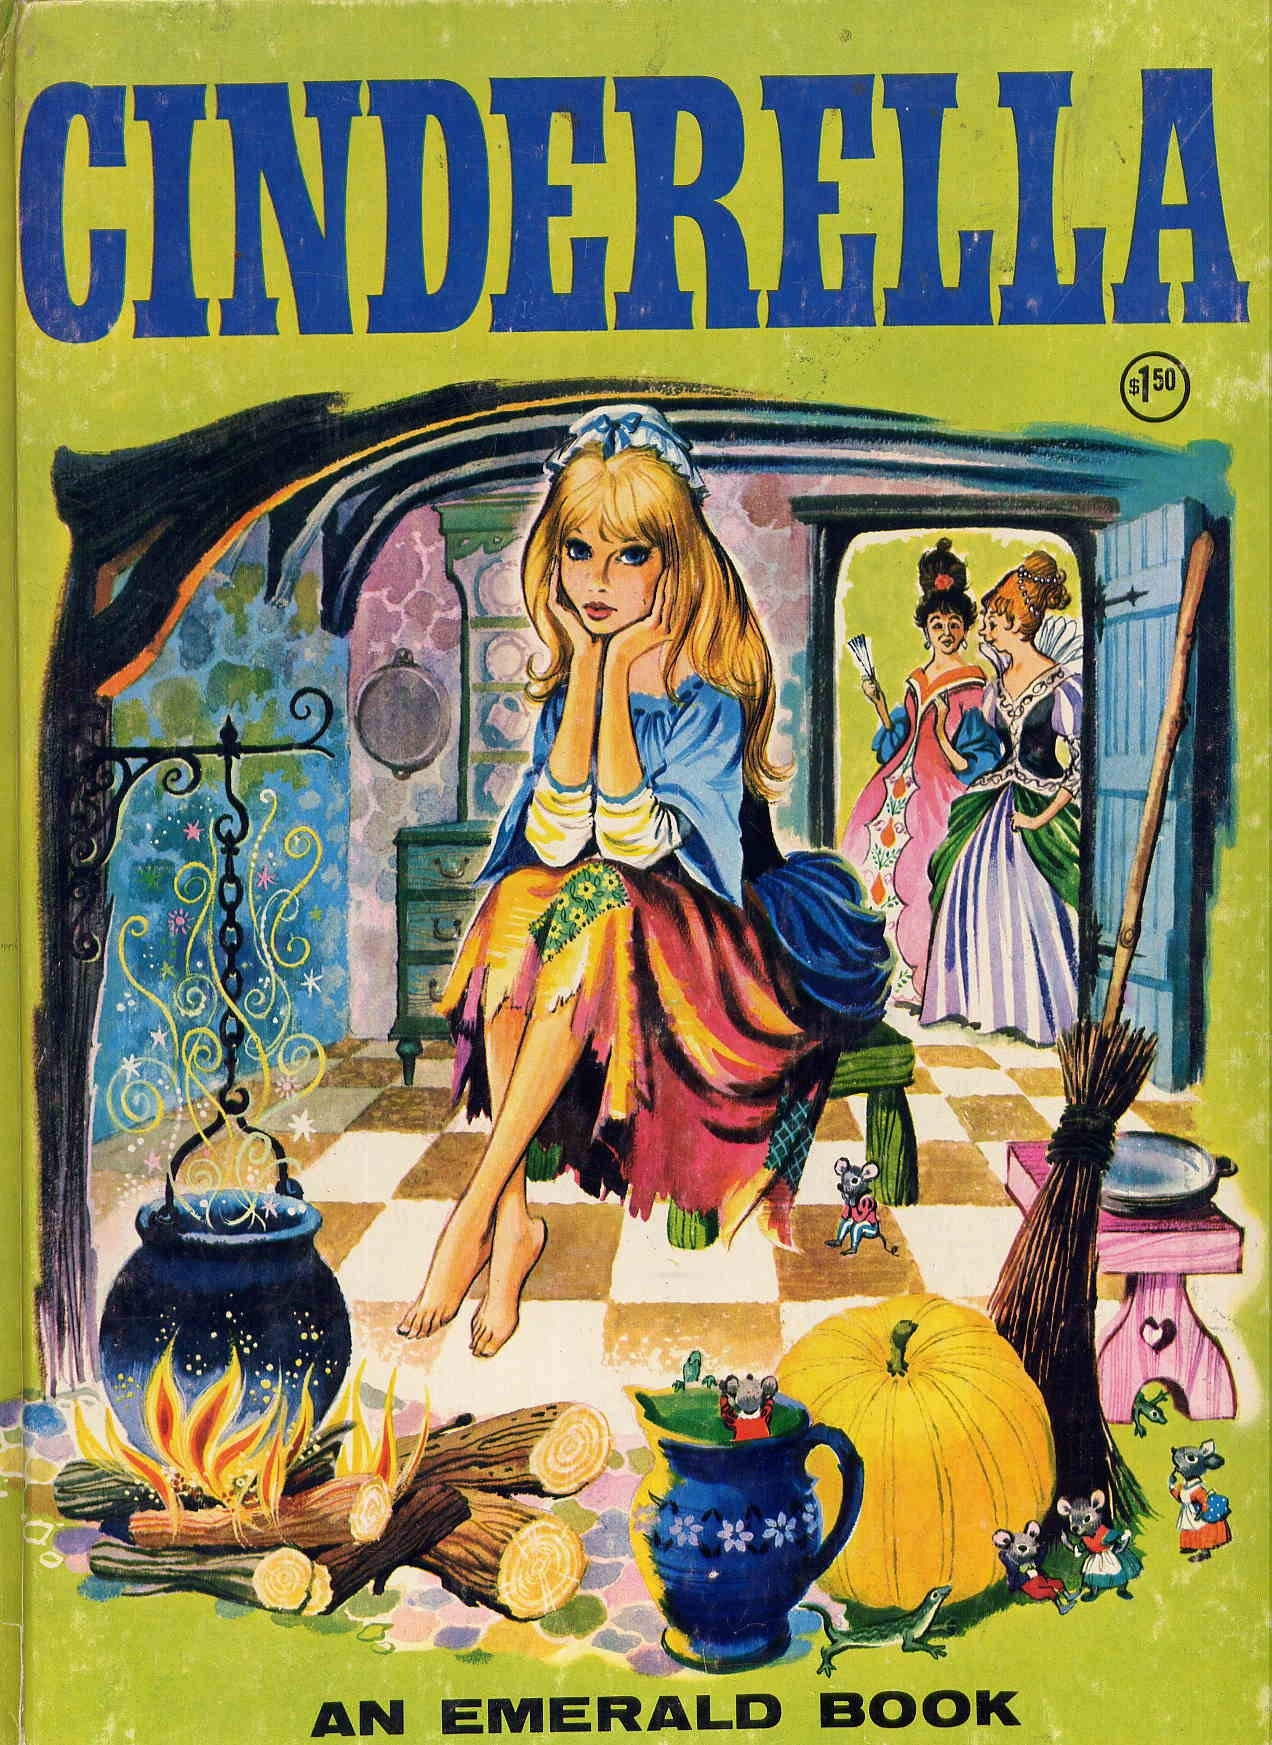 symbolism disney s cinderella The story of cinderella has been shared through many generations, exploring the life of a beautiful girl who is cruelly abused by her wicked stepsisters and stepmother.